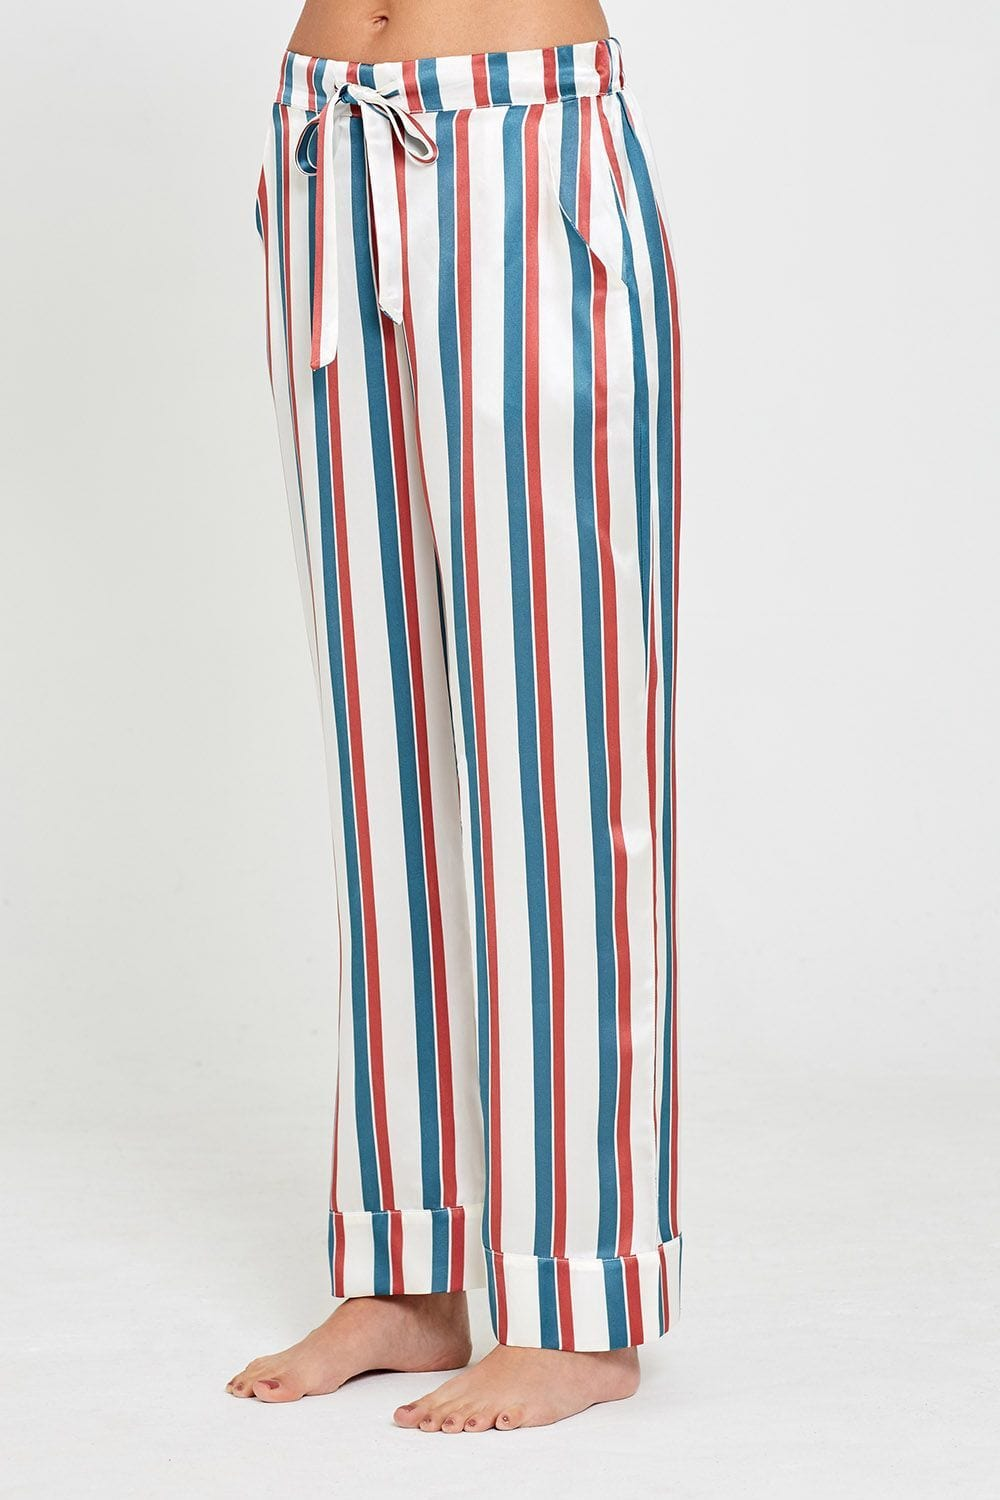 Evie Silk Pyjamas Stripe Print Trousers Front